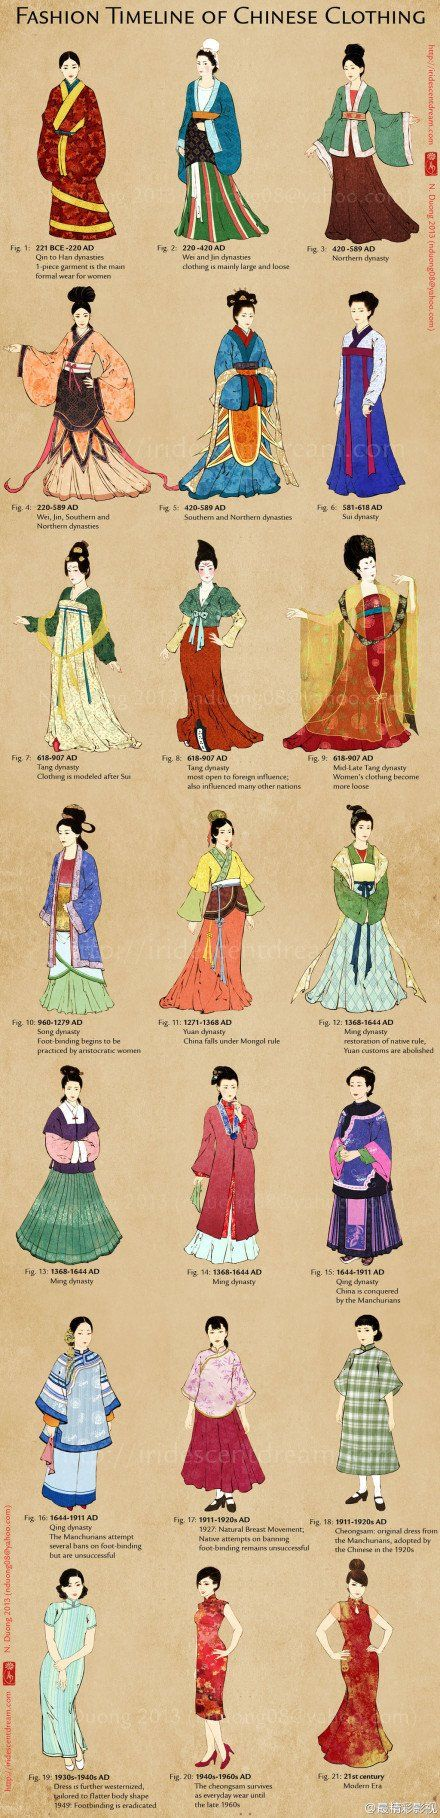 chinese fashion timeline for my ancient chinese fashion presentation stuff i like. Black Bedroom Furniture Sets. Home Design Ideas